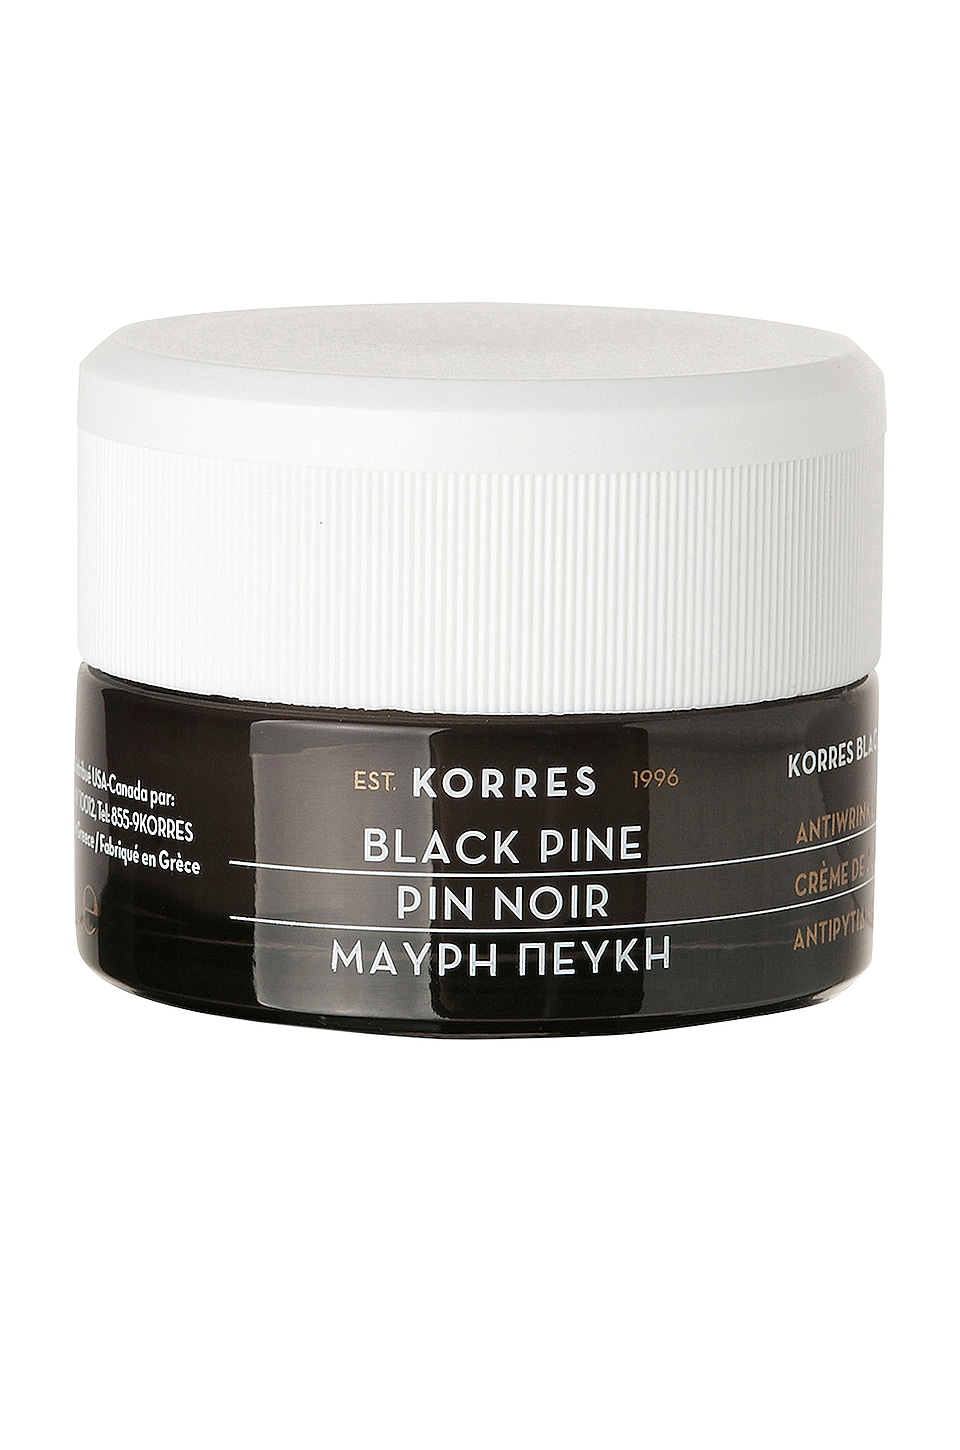 Korres Black Pine Day Cream